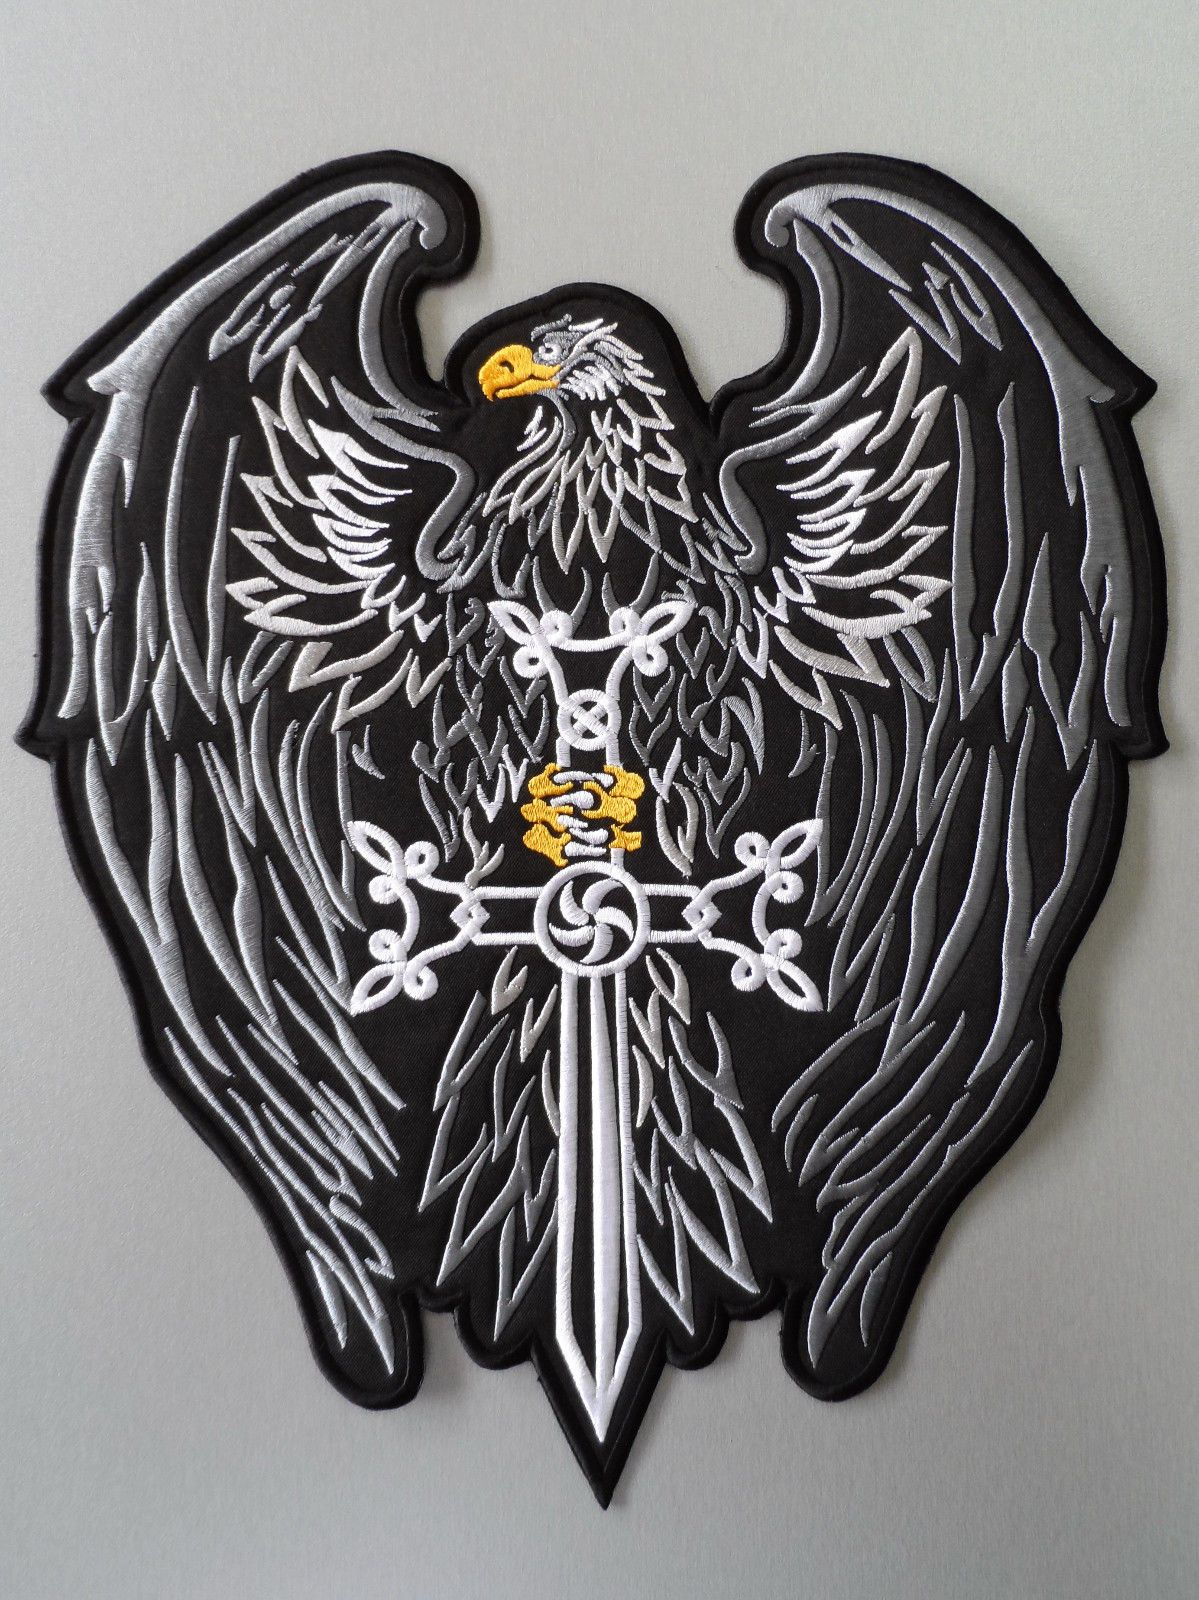 Details about Embroidered Biker Motorcycle Back Eagle